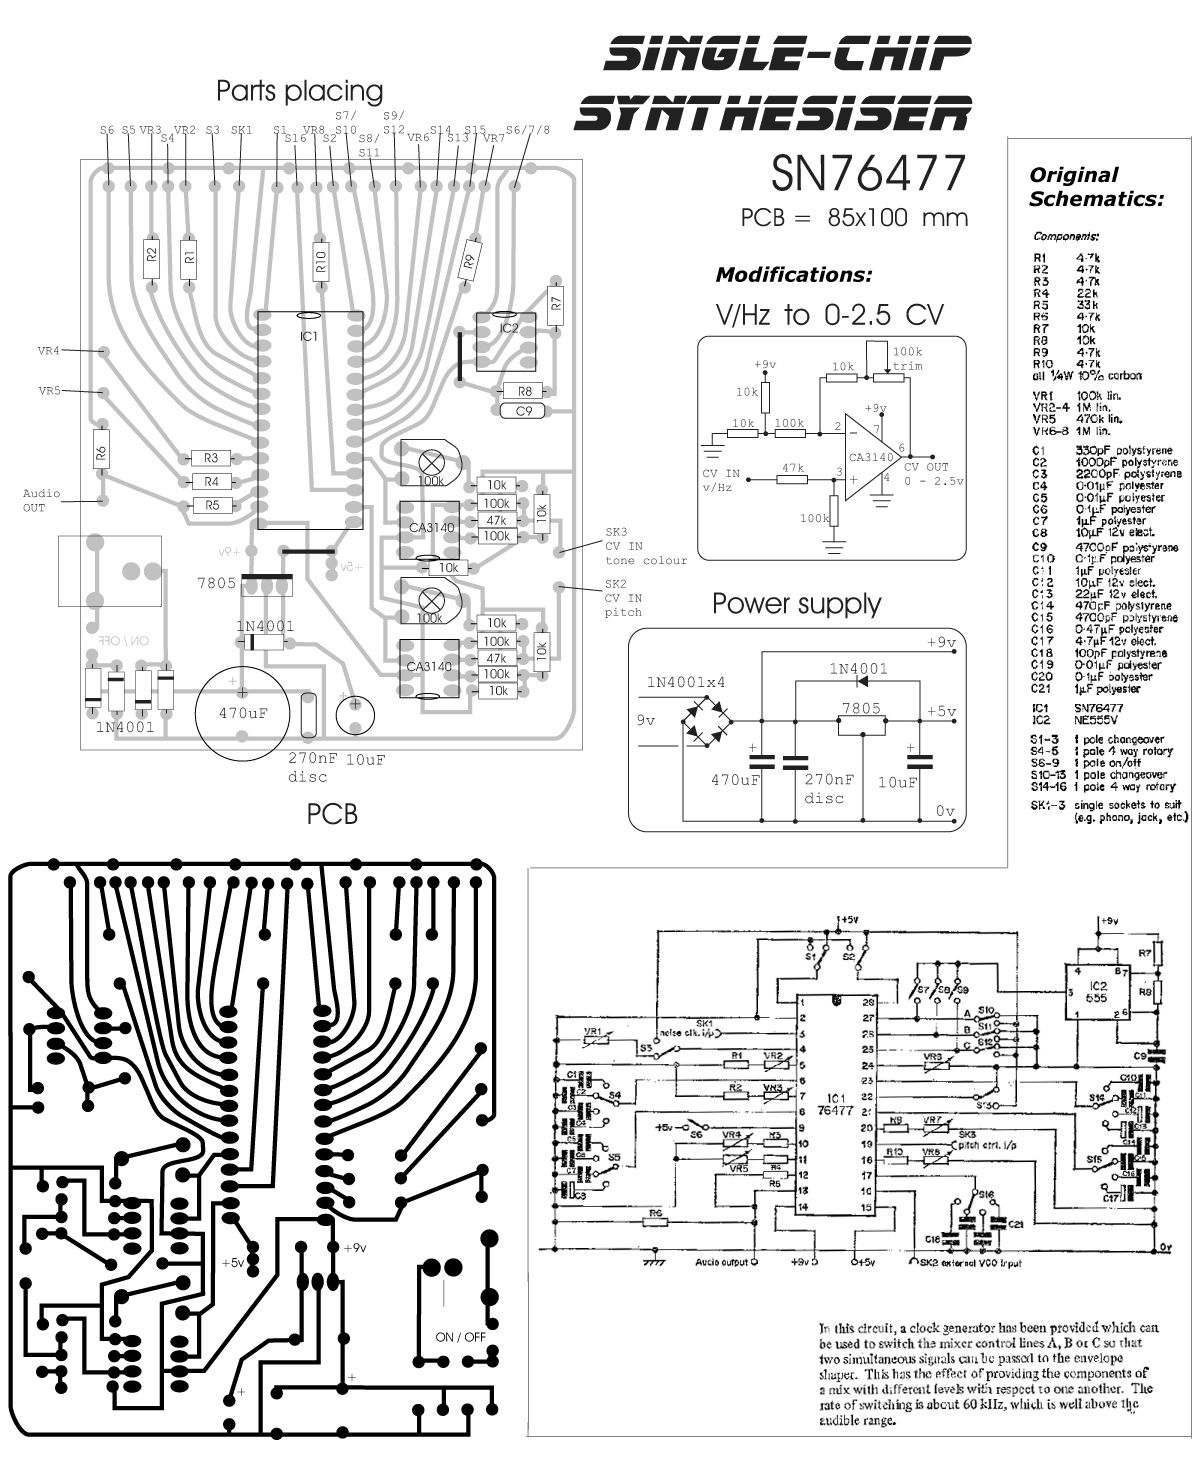 9761387b7e642ce015c5a16c5b1f7f06 pin by ari bowo on projects to try in 2019 pinterest circuit